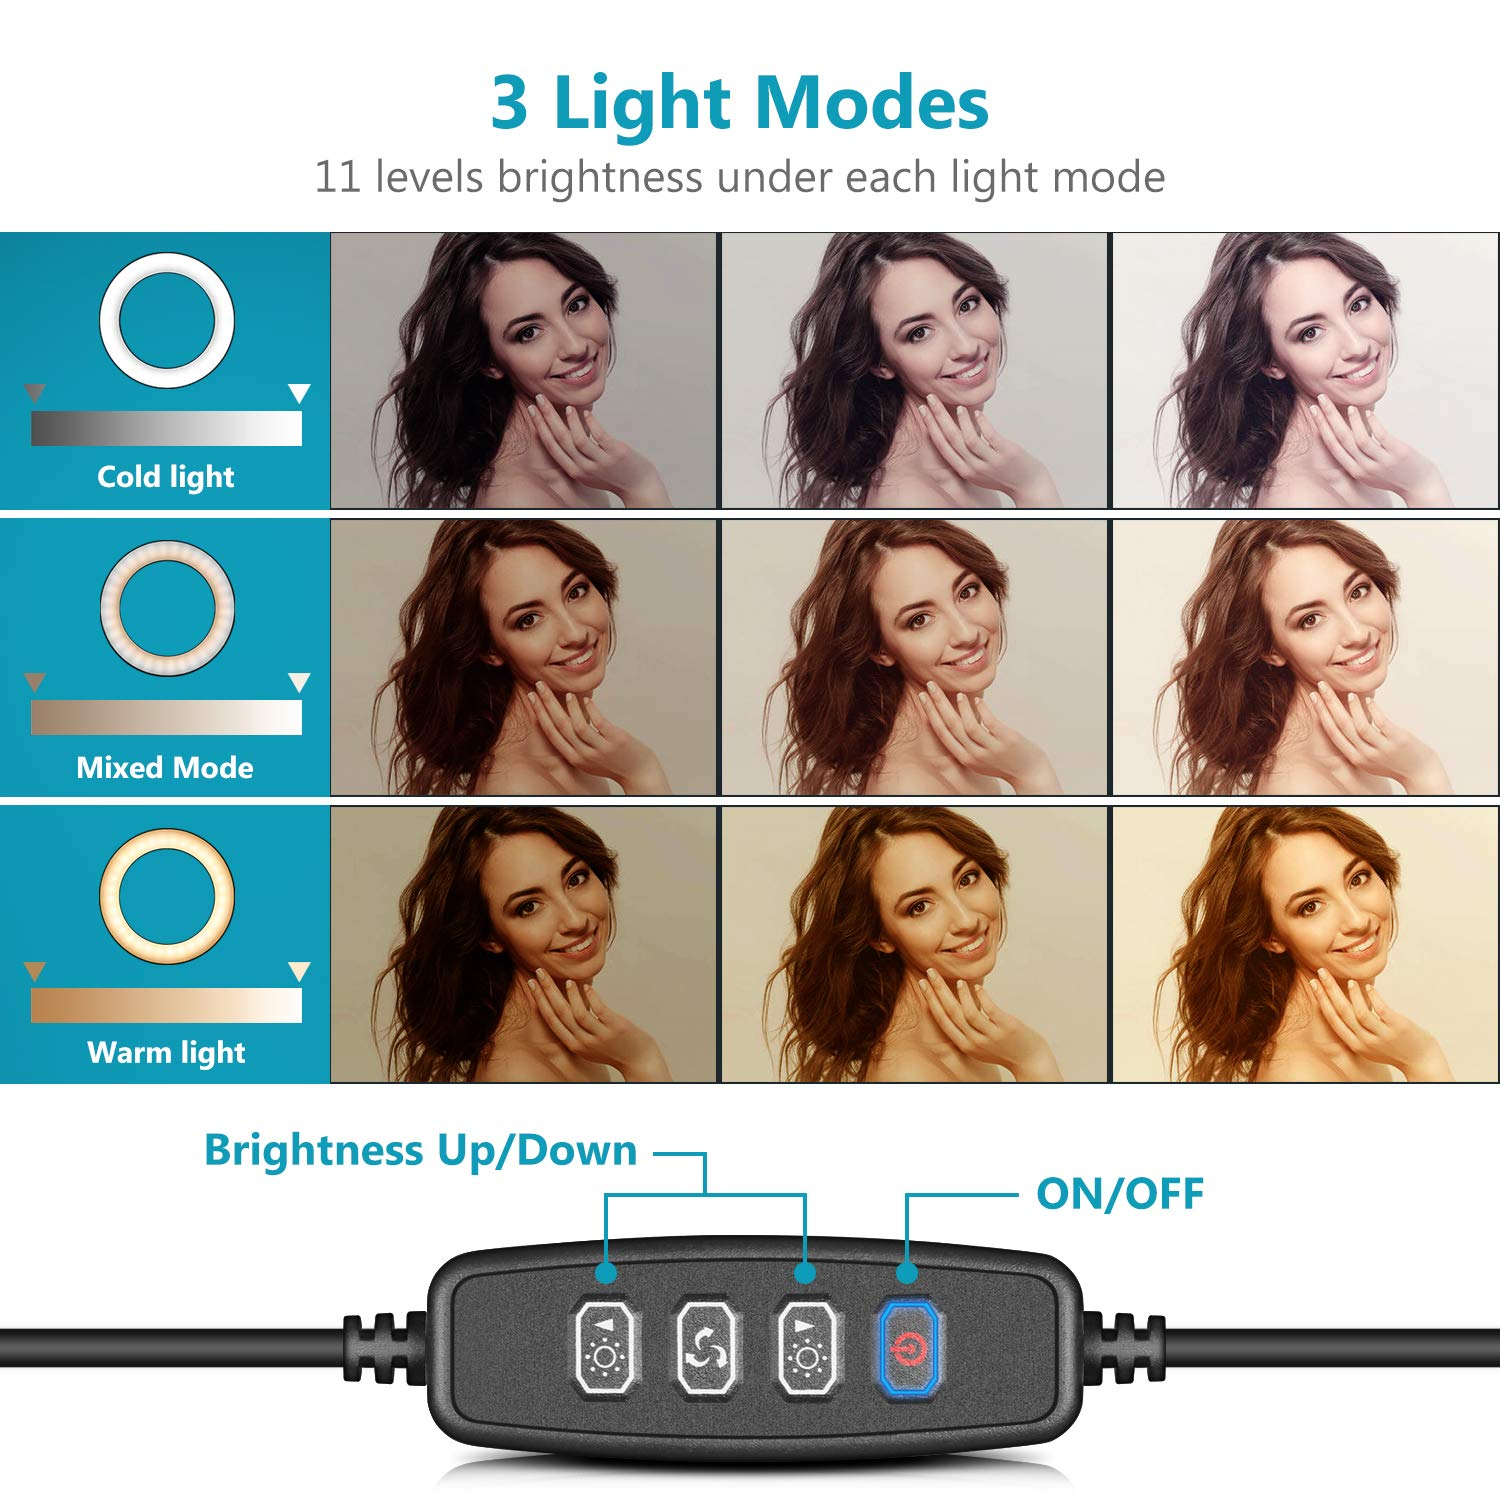 Neewer LED Ring Light 6-inch for YouTube Video Live Streaming Makeup Selfie Desktop Mini USB Camera LED Light with 3 Light Modes and 11 Brightness Level